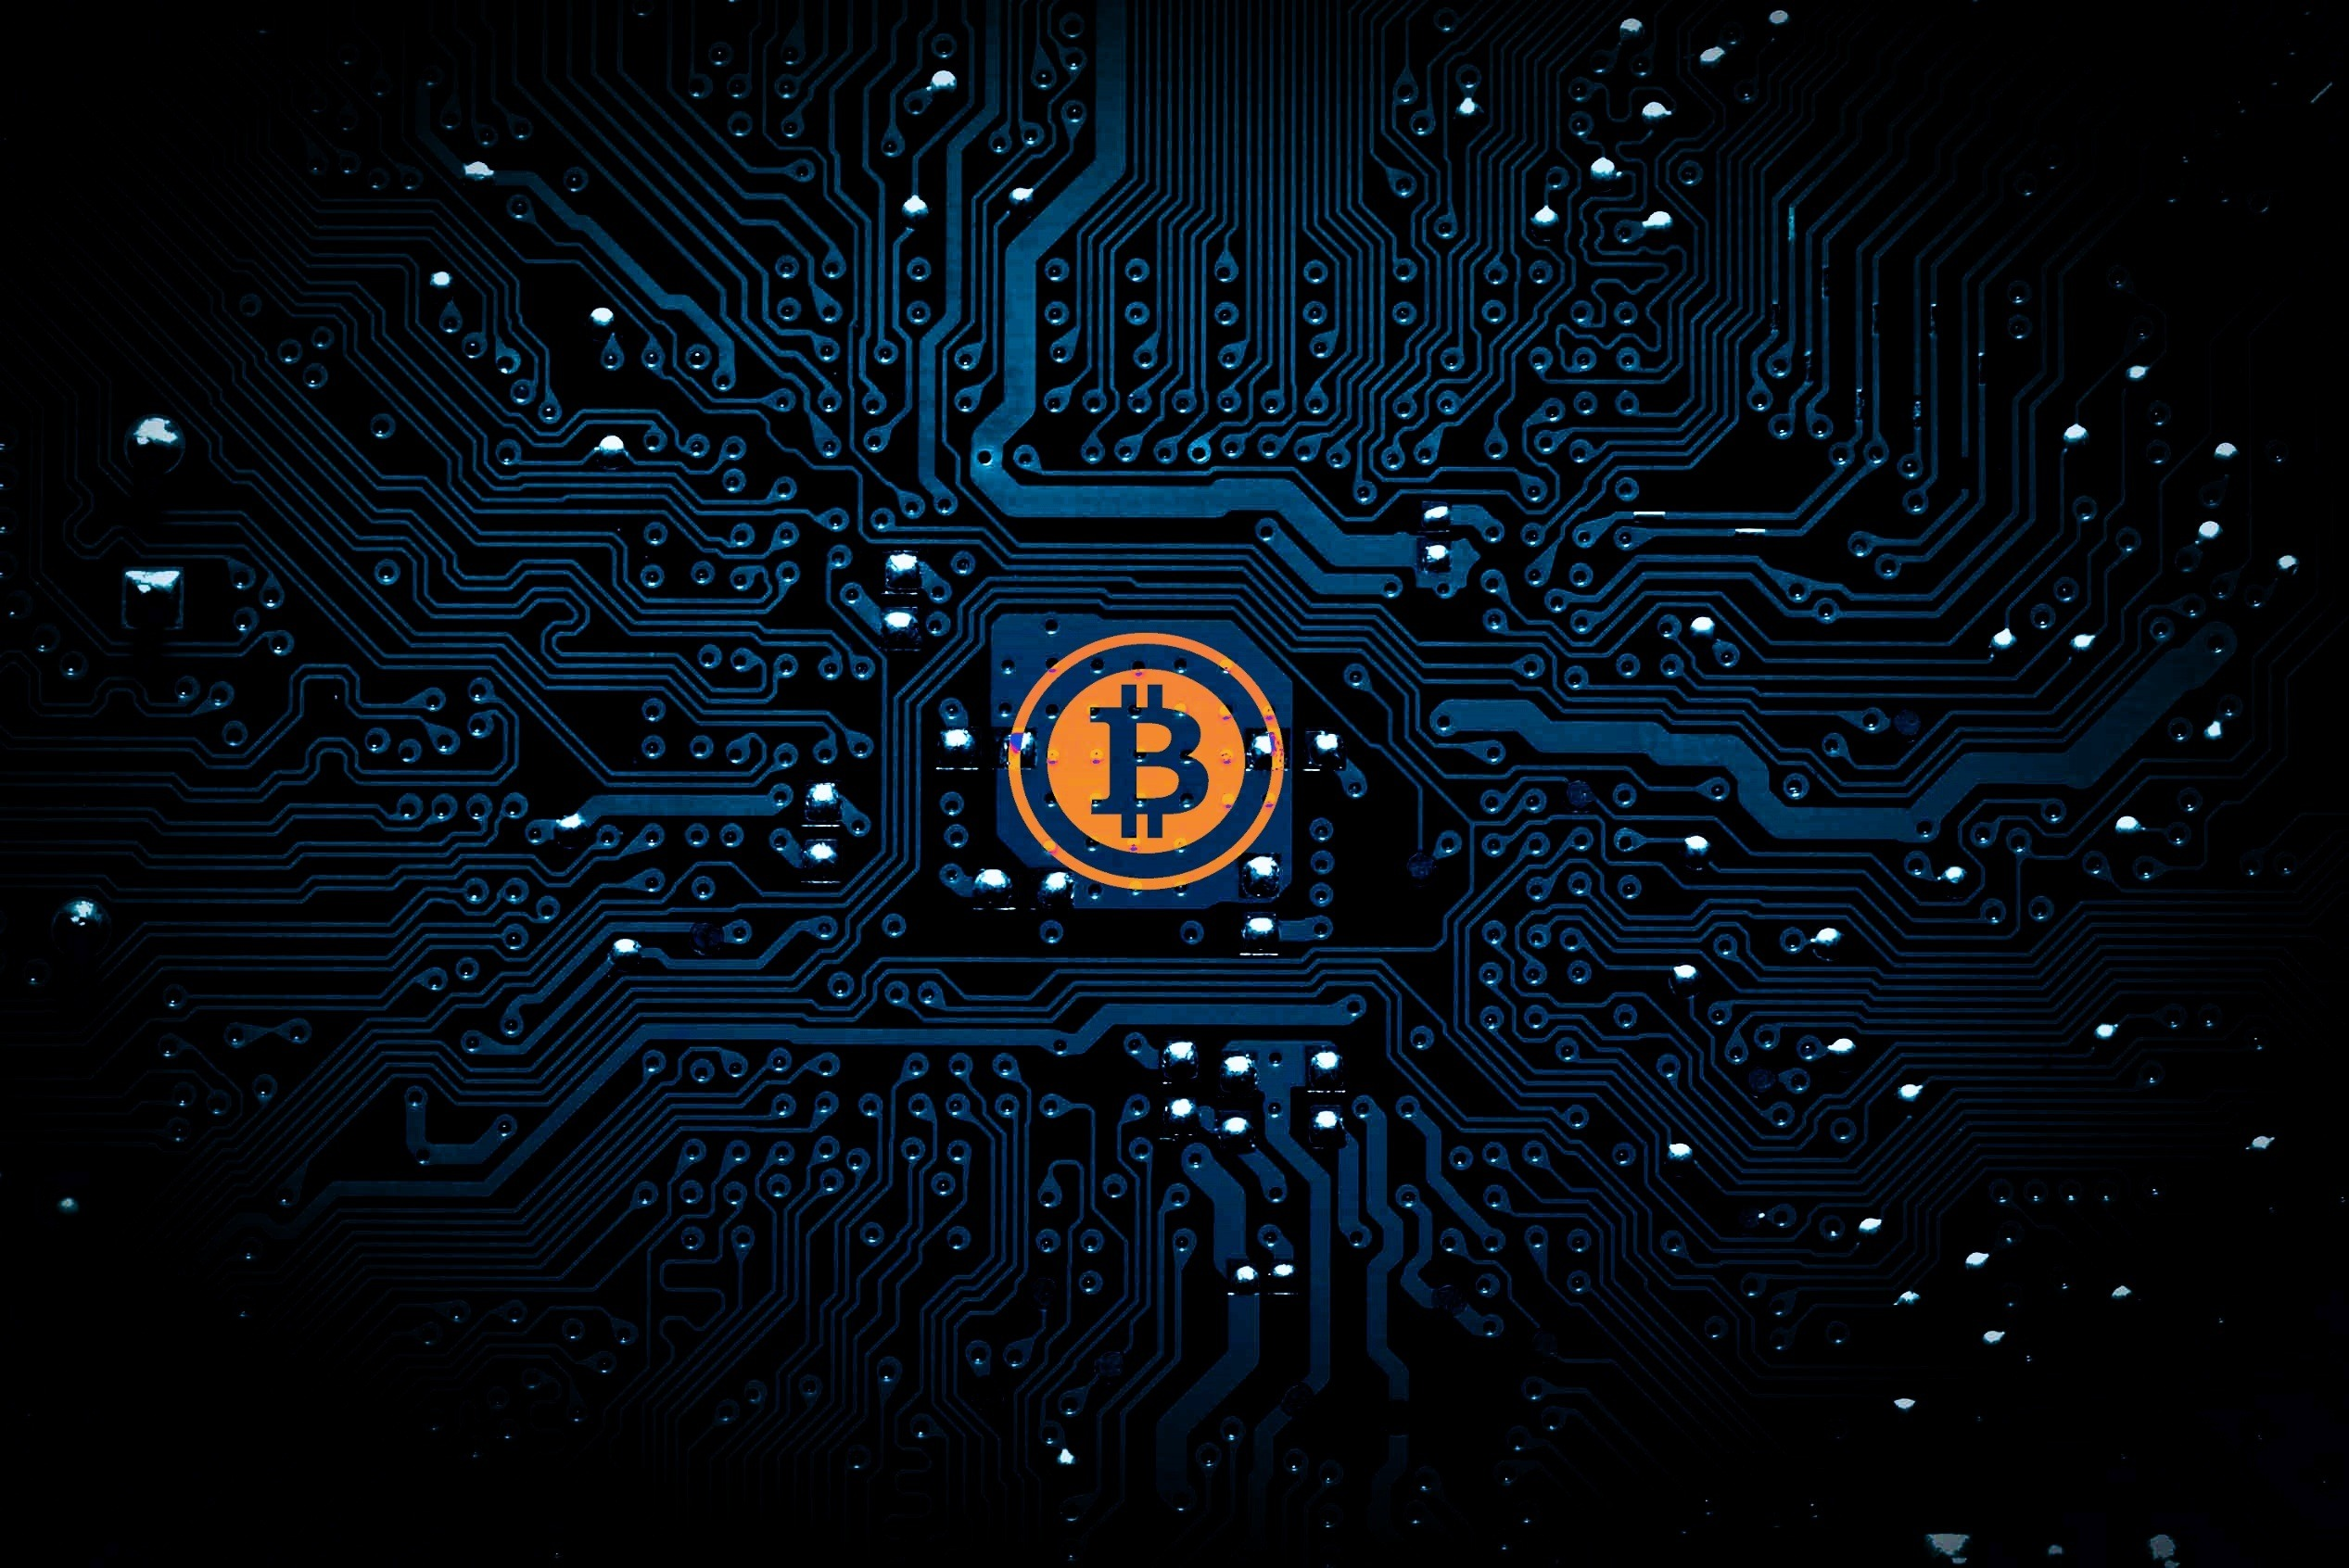 Cryptocurrency wallpaper stores